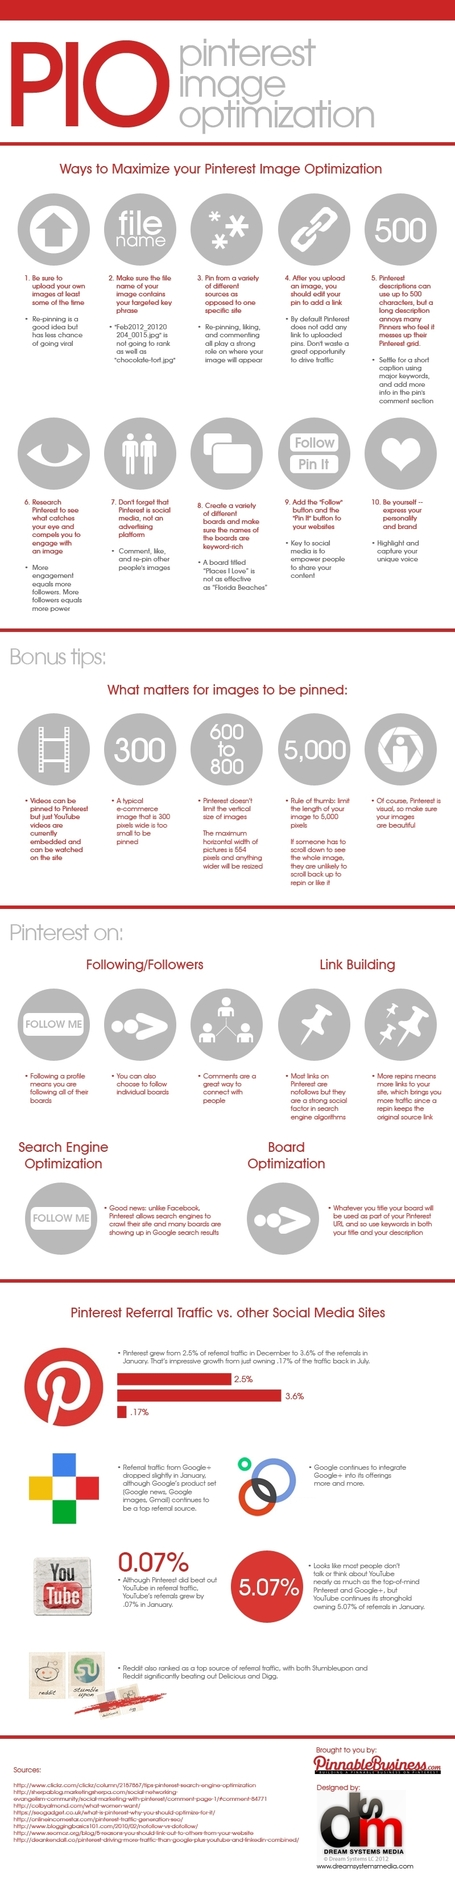 Pinterest Image Optimization [Infographic] | Social Media and the economy | Scoop.it